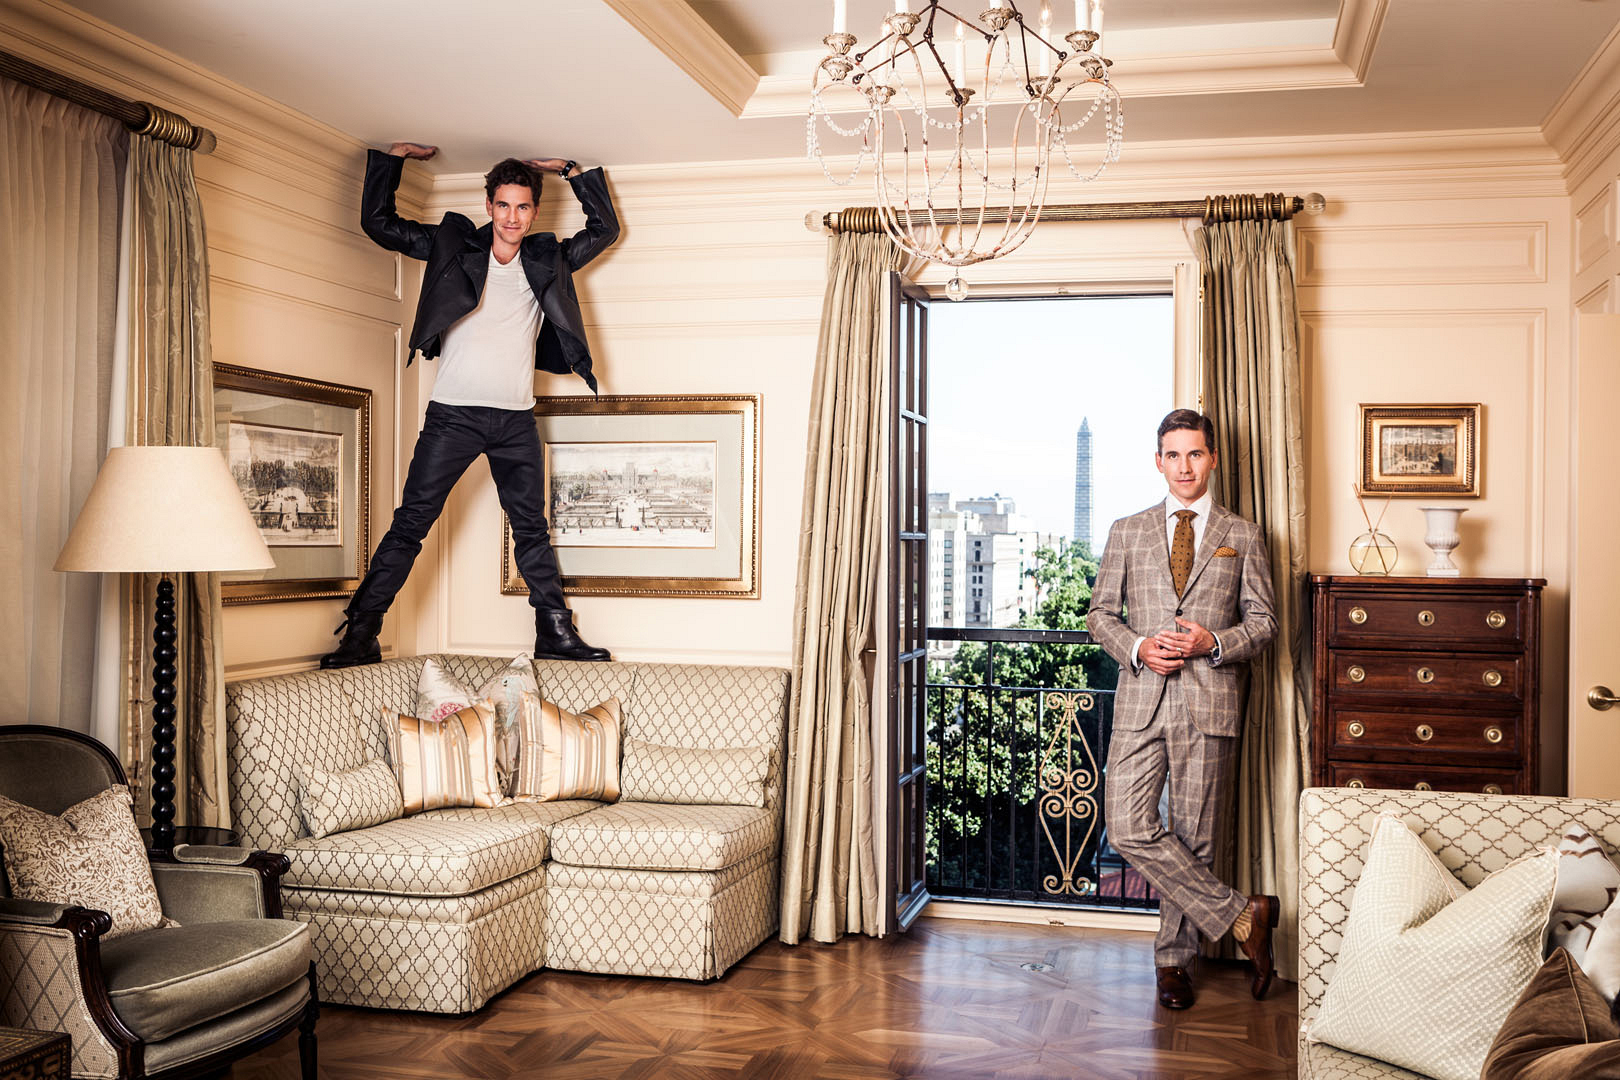 Brian Dietzen raises this roof in these incredible photos